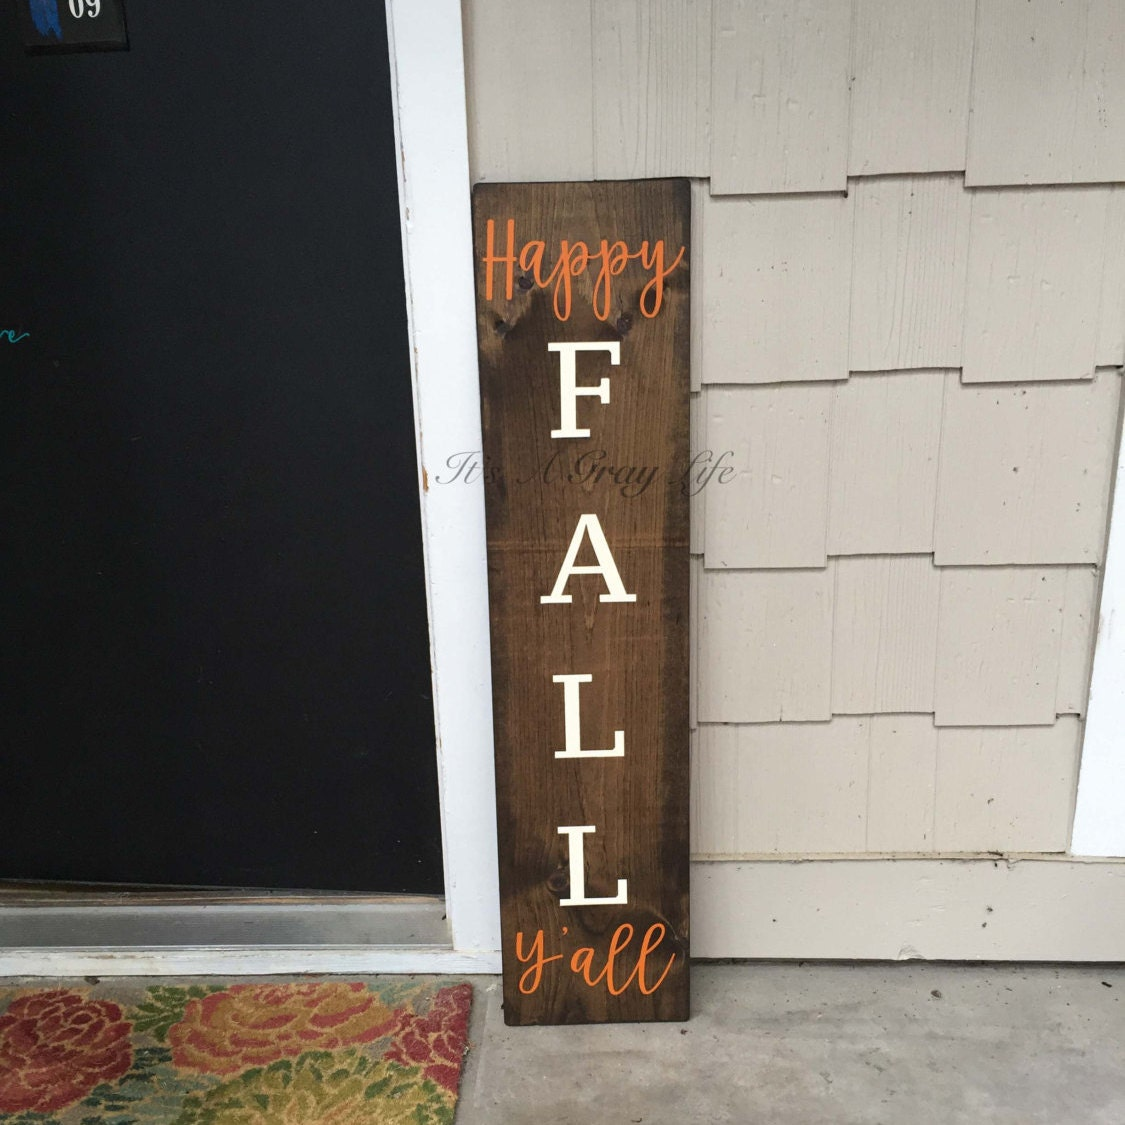 Happy fall yall welcome sign front porch sign fall zoom rubansaba